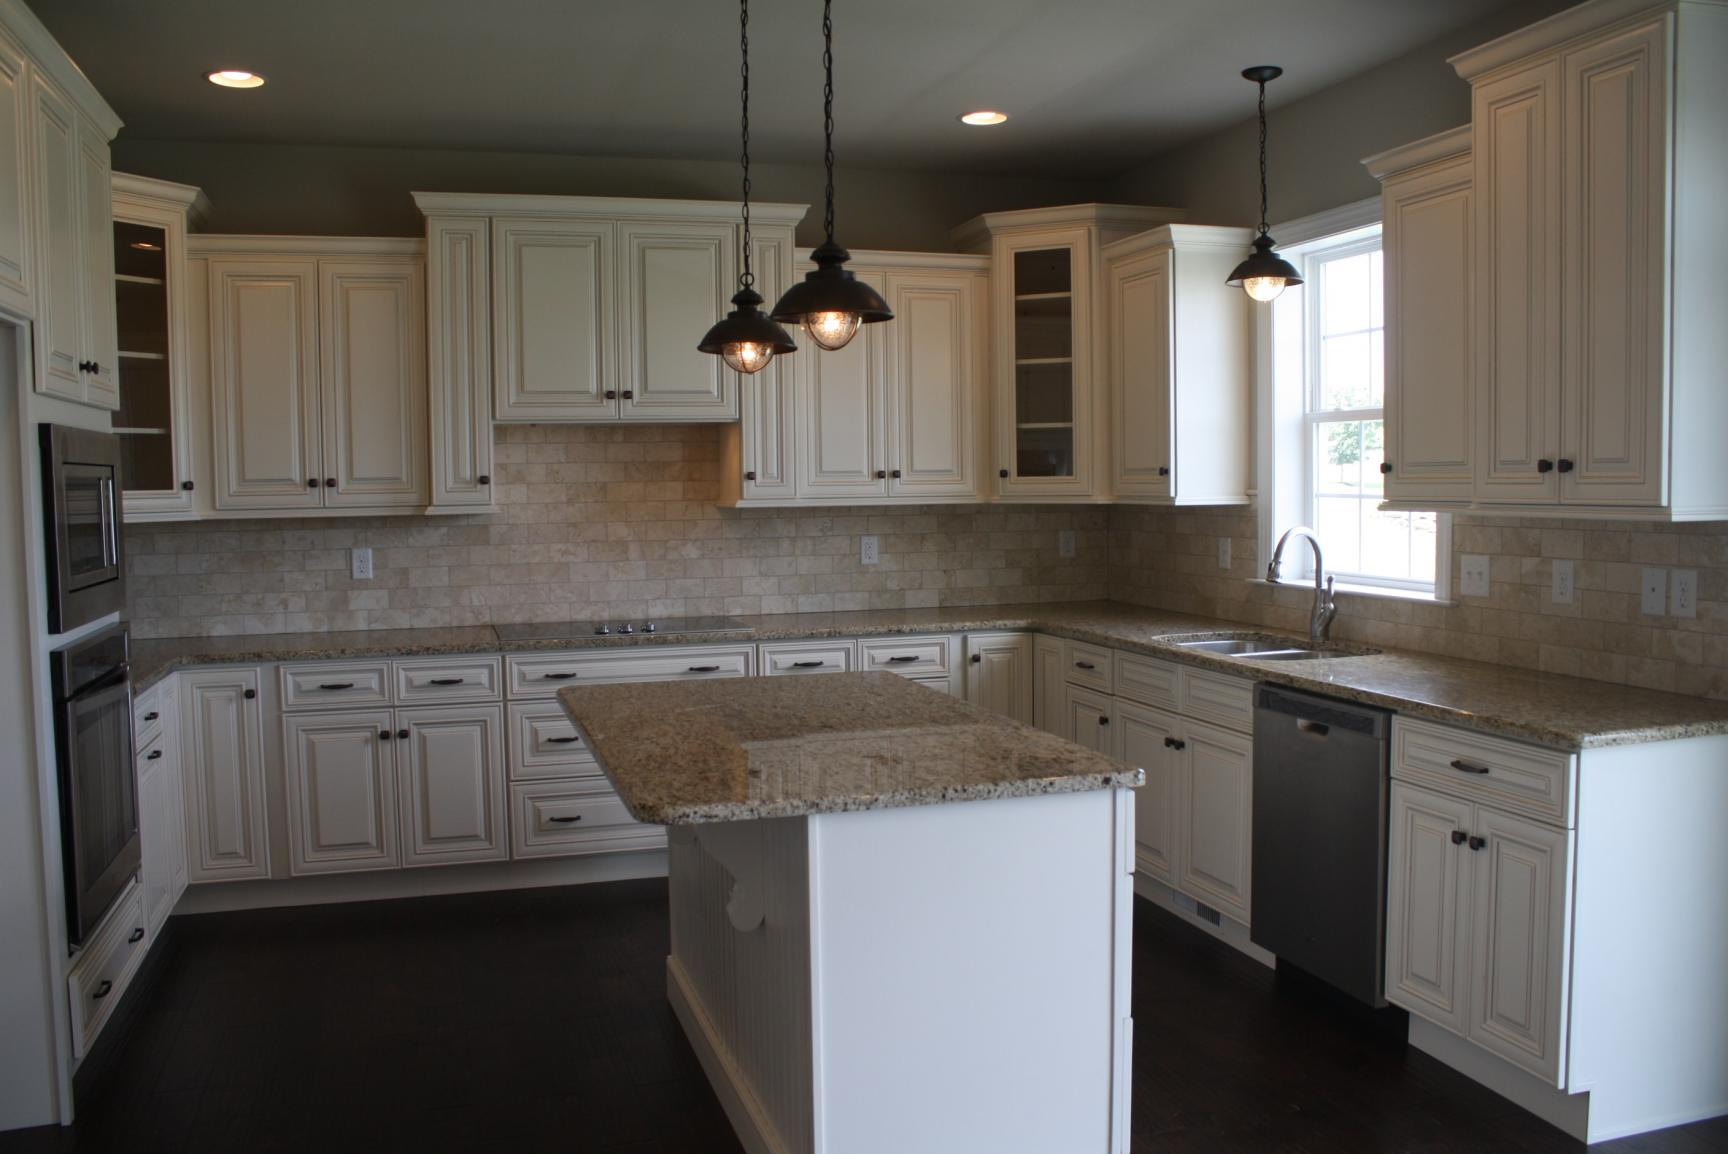 kitchen with white cabinets, tile backsplash, and island